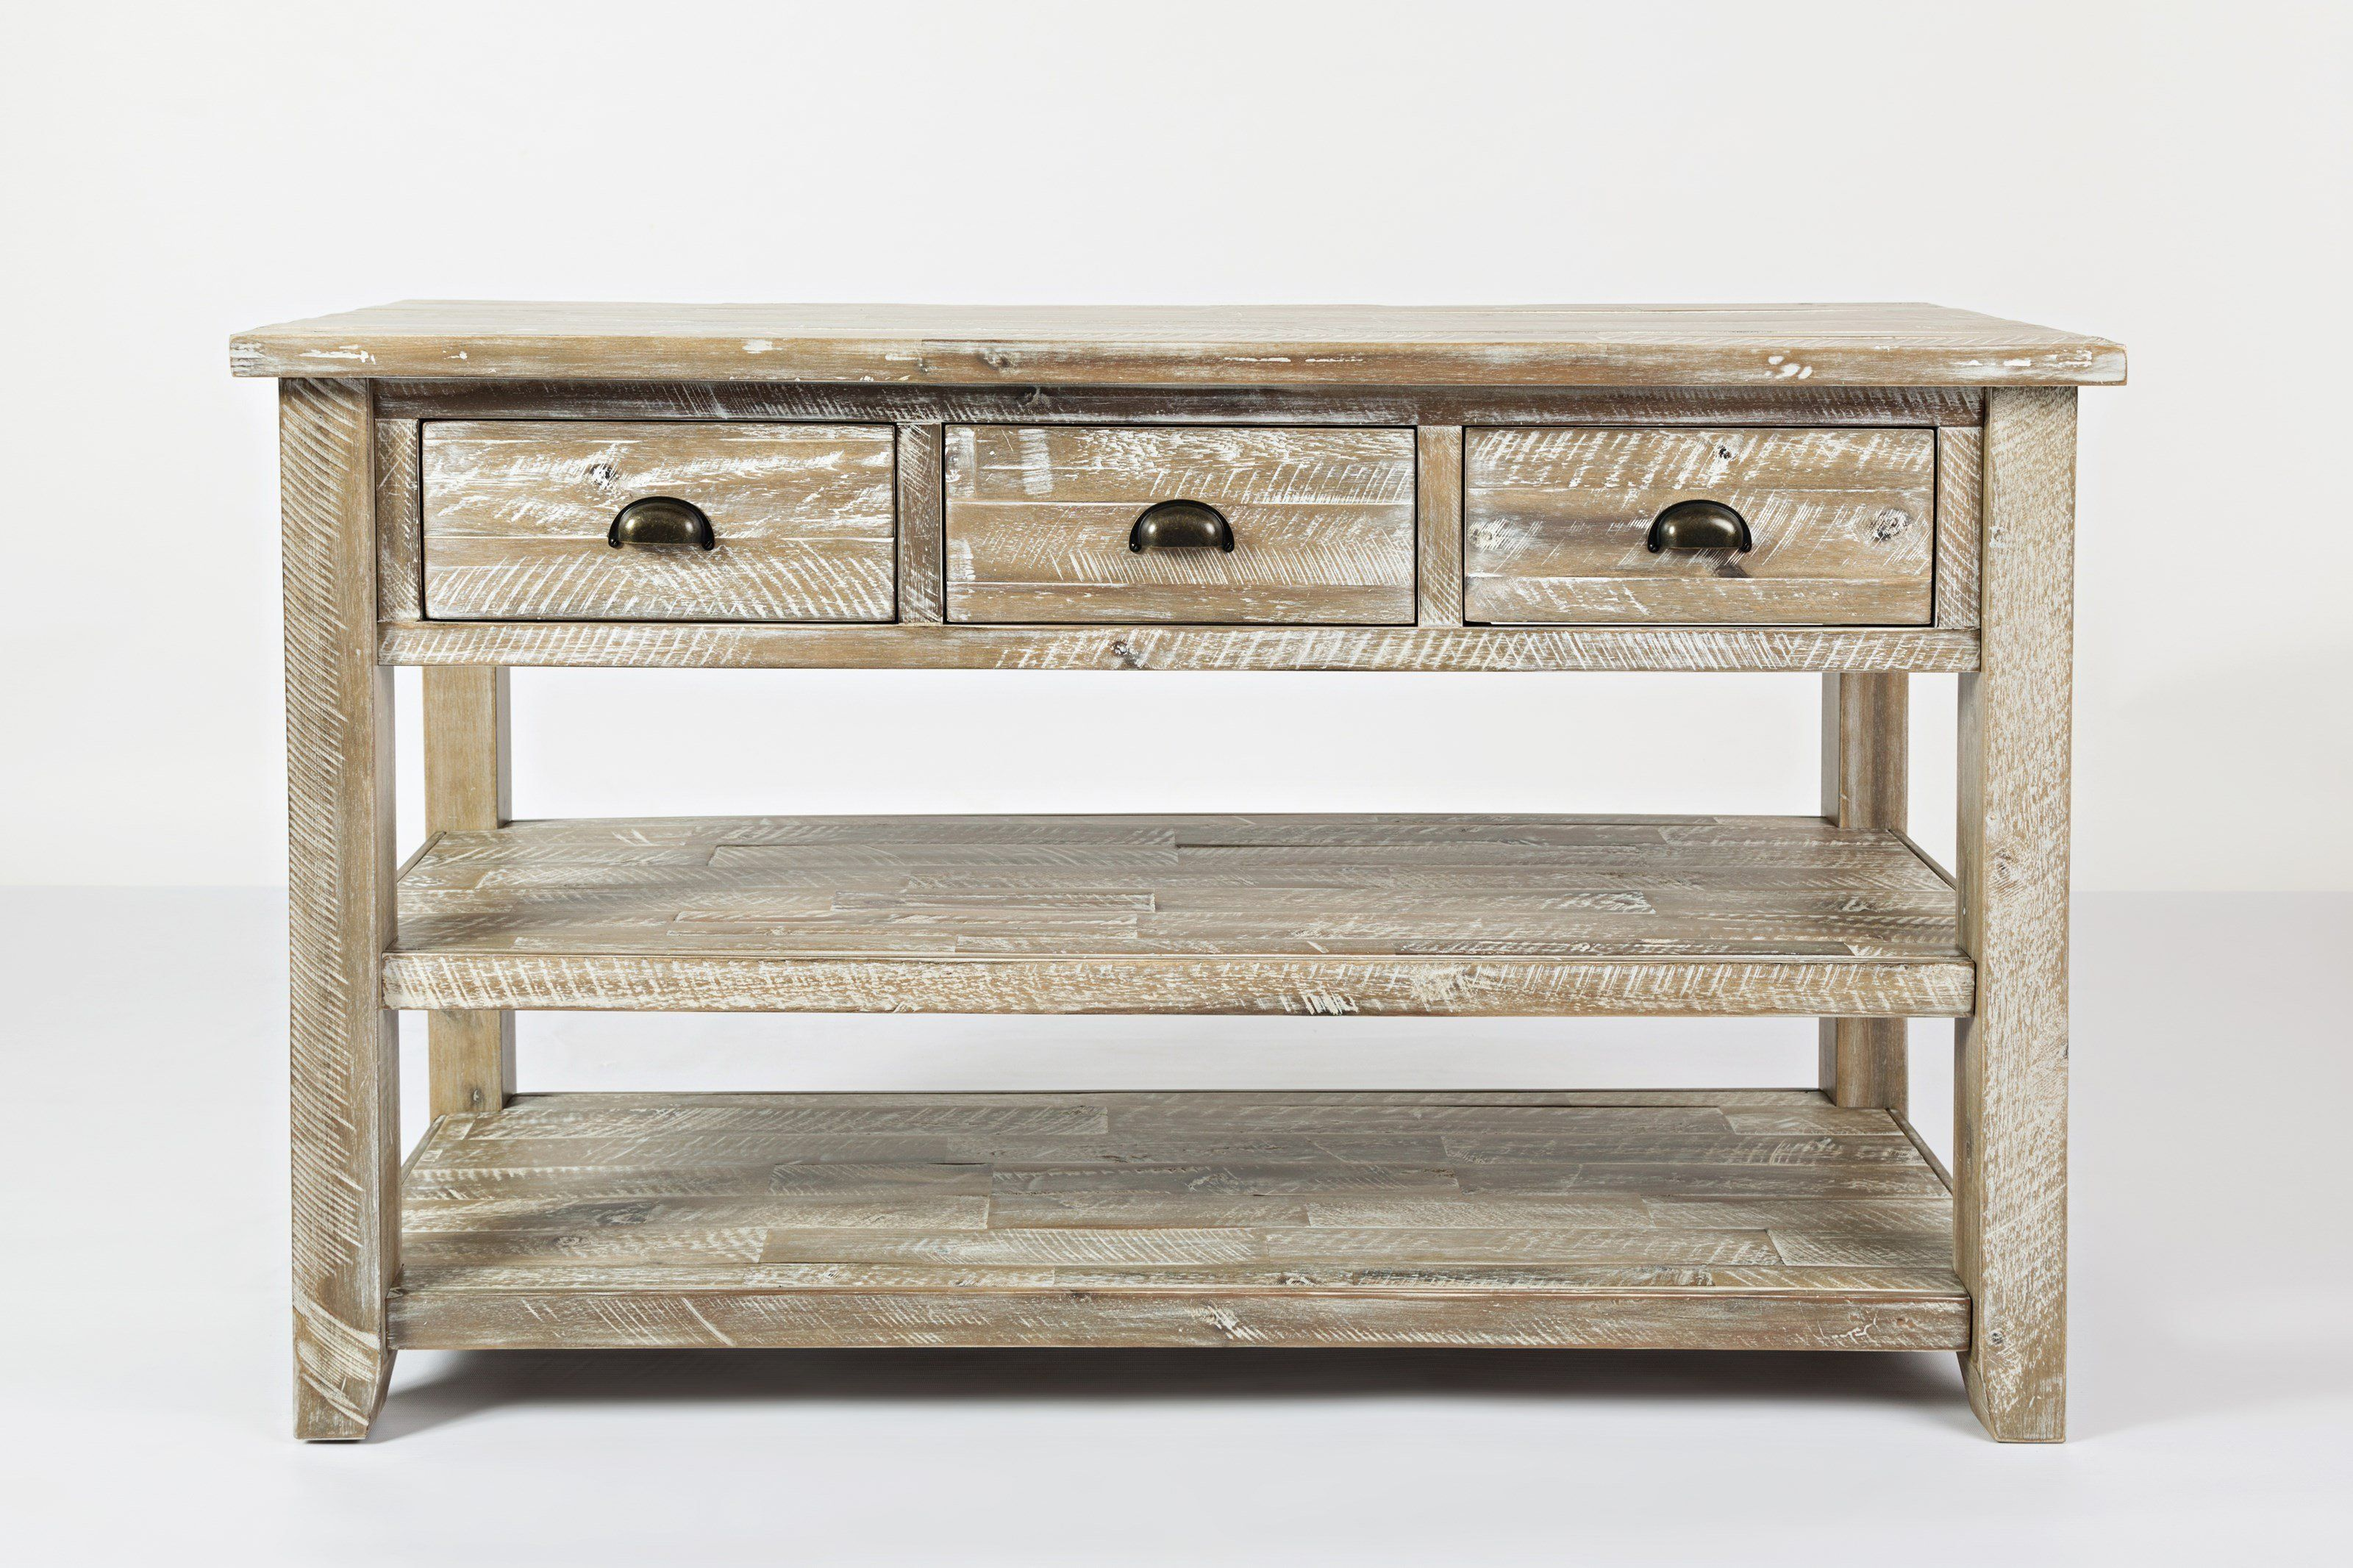 Wooden Sofa Table With Three Drawers And Two Open Shelves Washed Gray Gray Wo In 2020 Sofa Table With Storage Wooden Sofa Wooden Console Table